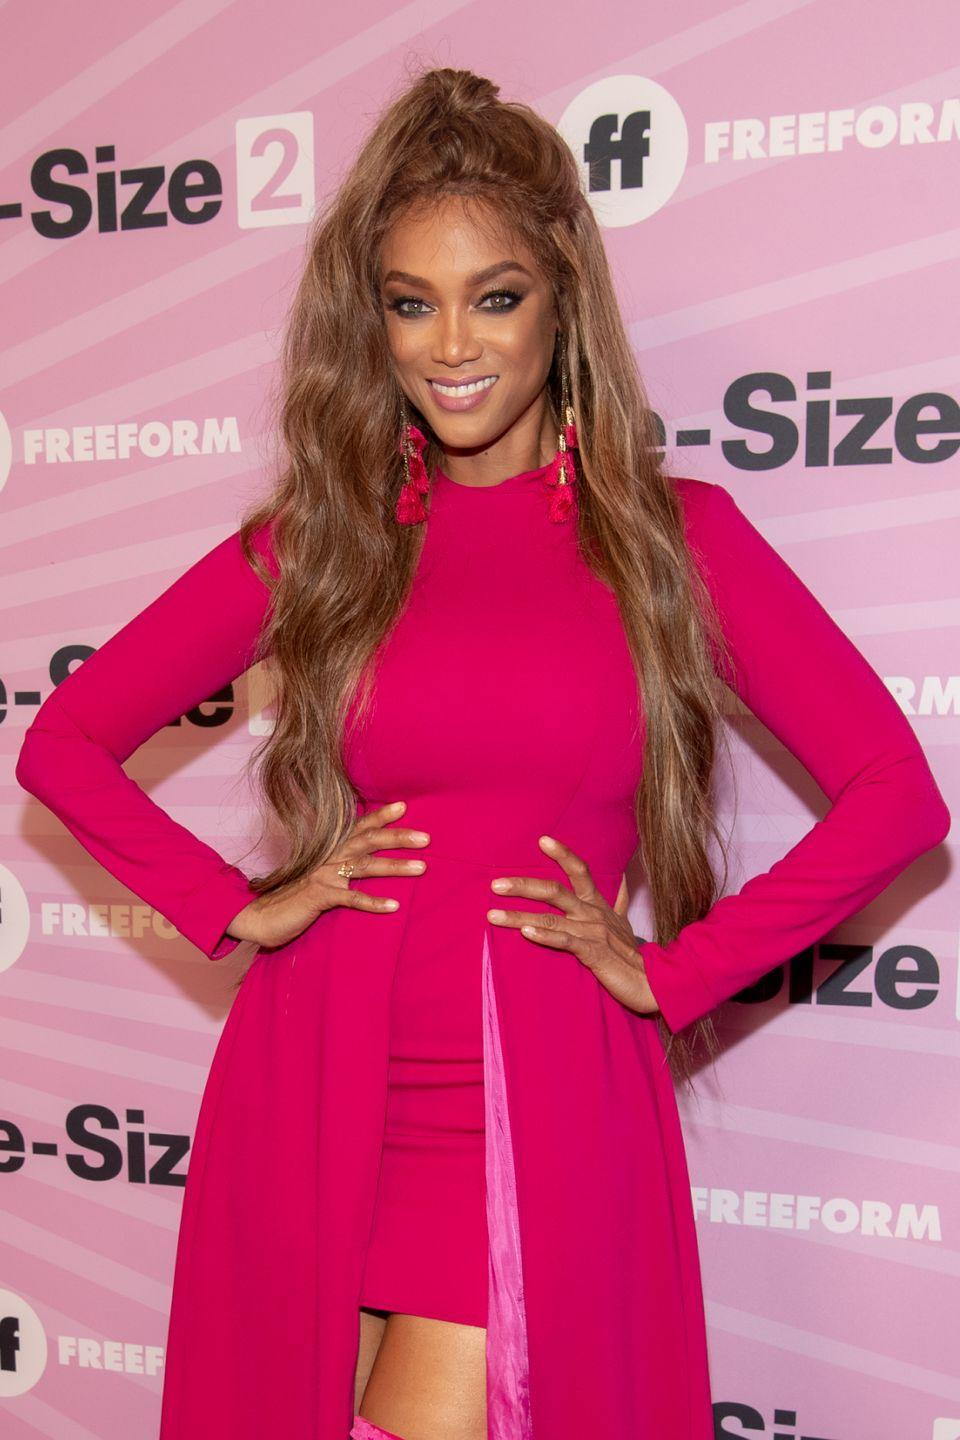 """<p>In her memoir, <em>Perfect Is Boring</em>, Tyra shared that she got a nose job early in her career. Although she did have bones in her nose that were """"growing and itching,"""" the <em>America's Next Top Model </em>host admitted that she could breathe fine and just wanted to add cosmetic surgery. <br></p><p>""""Natural beauty is unfair,"""" she told <em><a href=""""https://people.com/tv/tyra-banks-nose-job/?"""" rel=""""nofollow noopener"""" target=""""_blank"""" data-ylk=""""slk:PEOPLE"""" class=""""link rapid-noclick-resp"""">PEOPLE</a></em>. """"I get really uncomfortable when women who are these natural beauties judge anybody who does anything to themselves.""""</p>"""